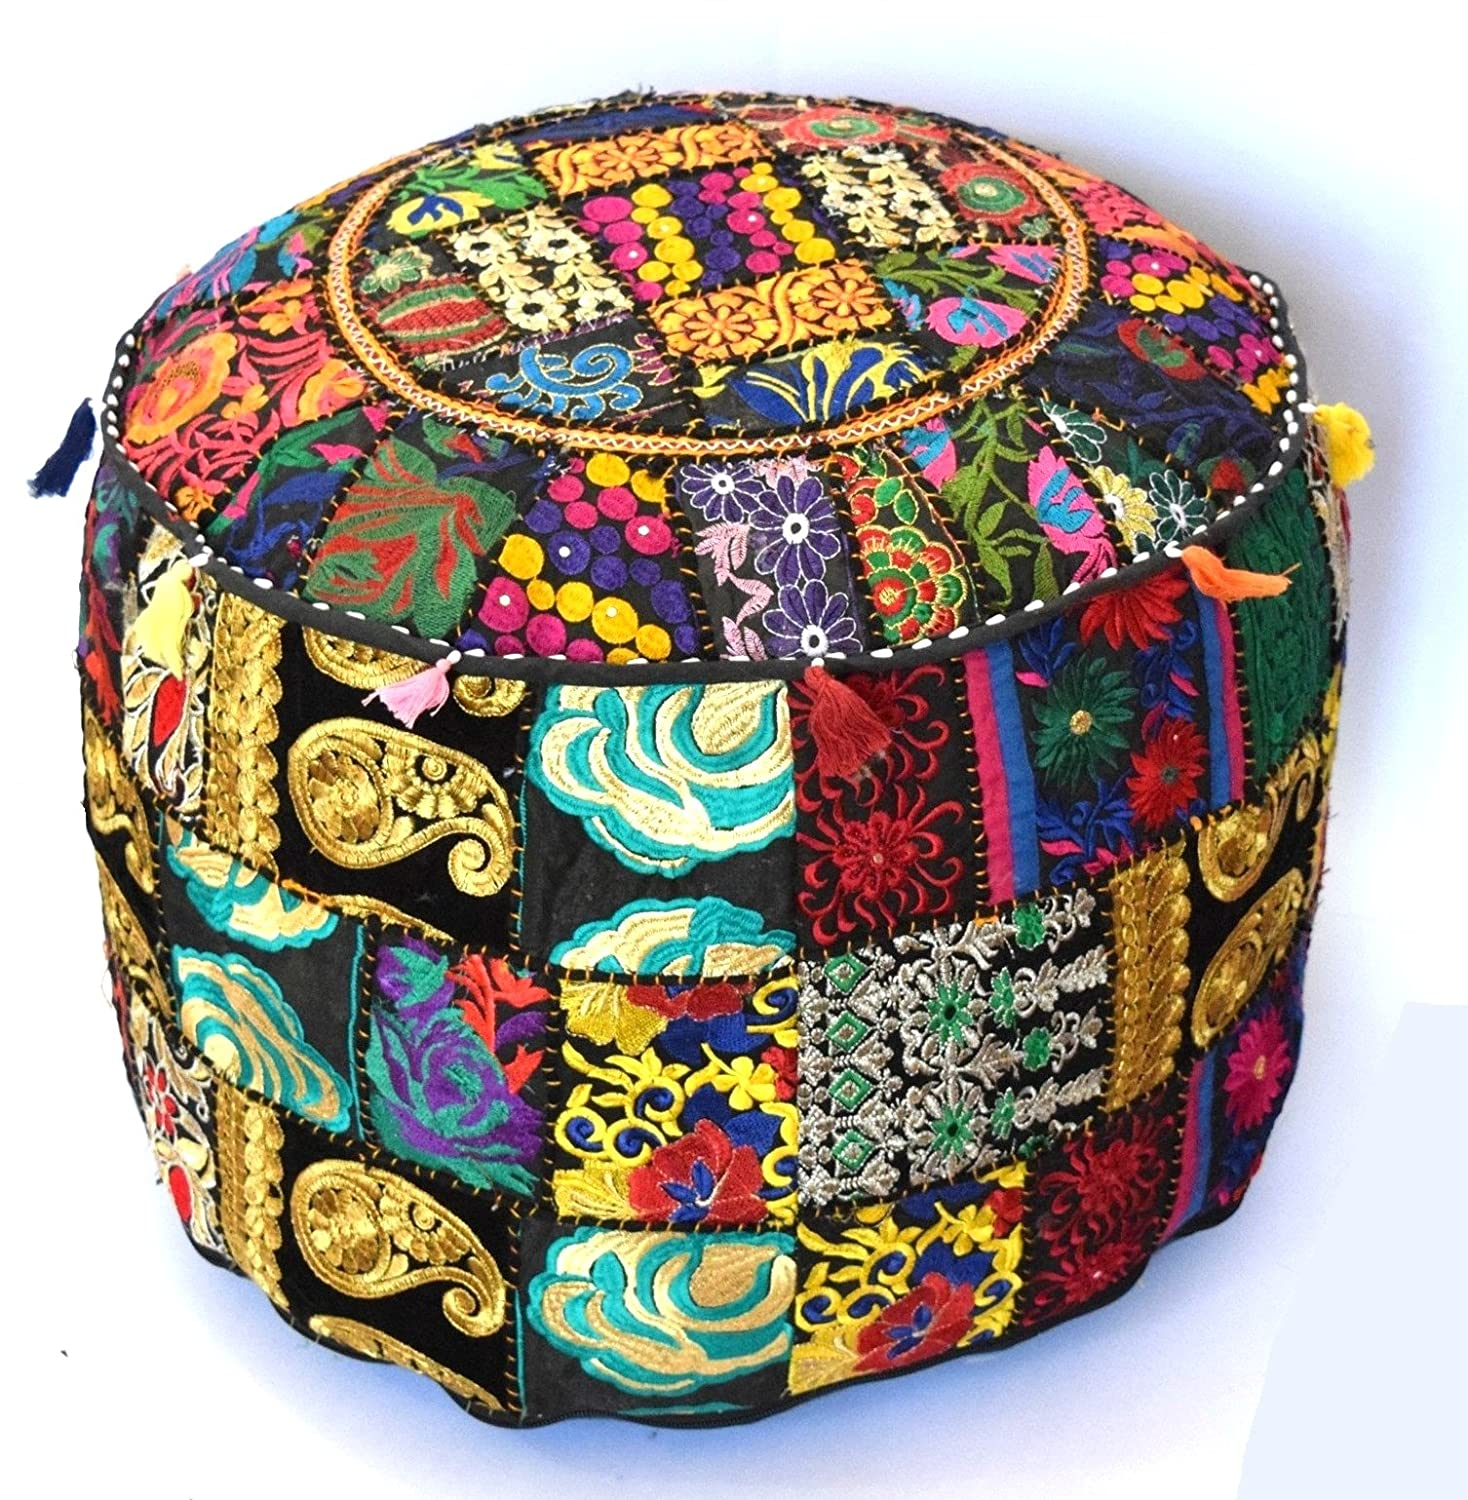 khushvin Indian Handmade Ottoman Cover Pouf Decorative Foot Stool 18x14Sari Patchwork Pouf Round Ottoman